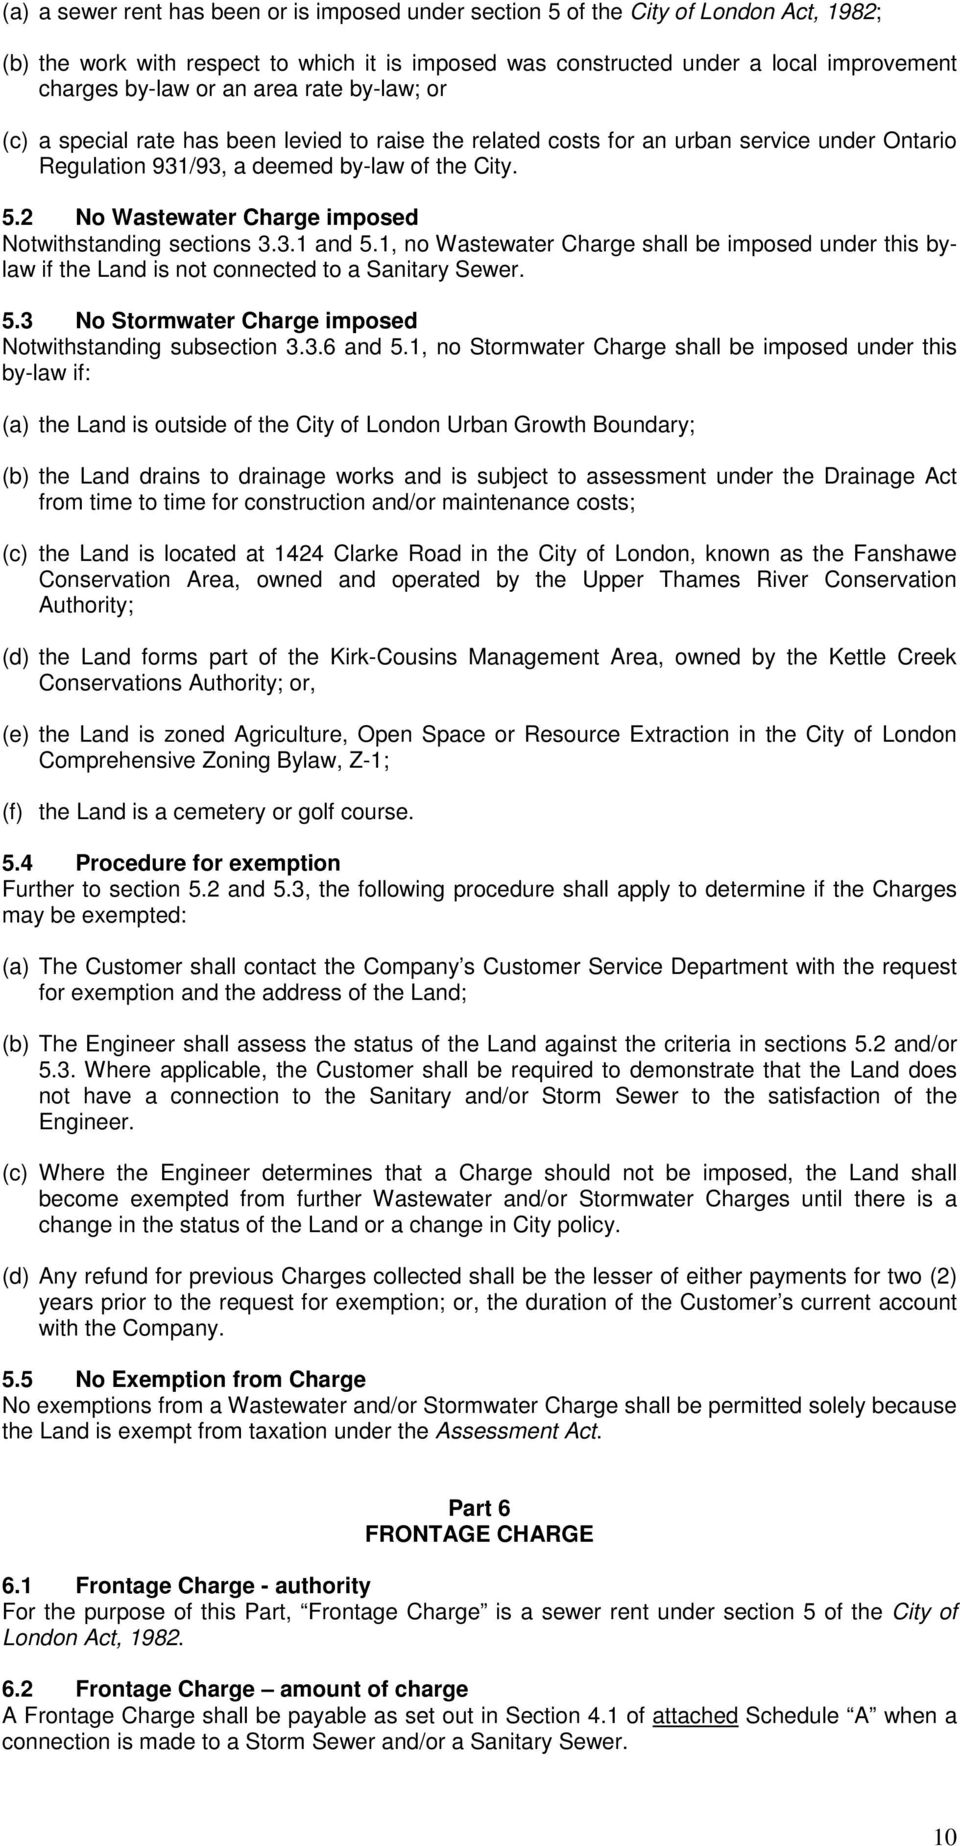 2 No Wastewater Charge imposed Notwithstanding sections 3.3.1 and 5.1, no Wastewater Charge shall be imposed under this bylaw if the Land is not connected to a Sanitary Sewer. 5.3 No Stormwater Charge imposed Notwithstanding subsection 3.